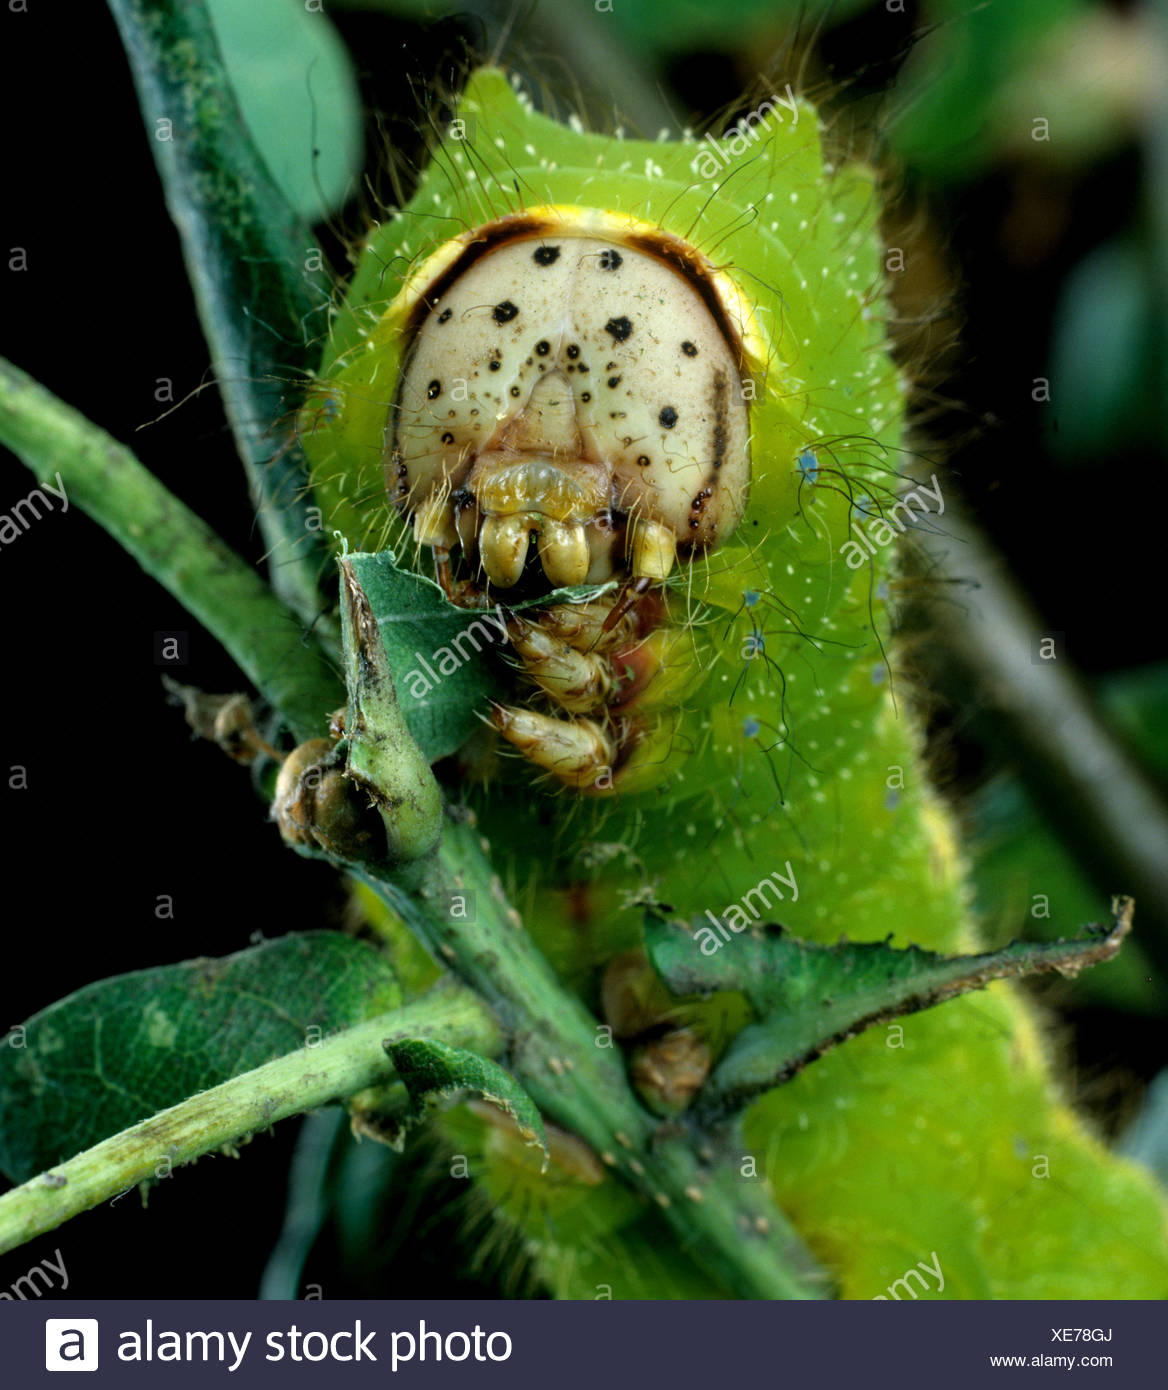 Chinese oak silworm or tussar moth Antheraea pernyi caterpillar on oak foliage - Stock Image